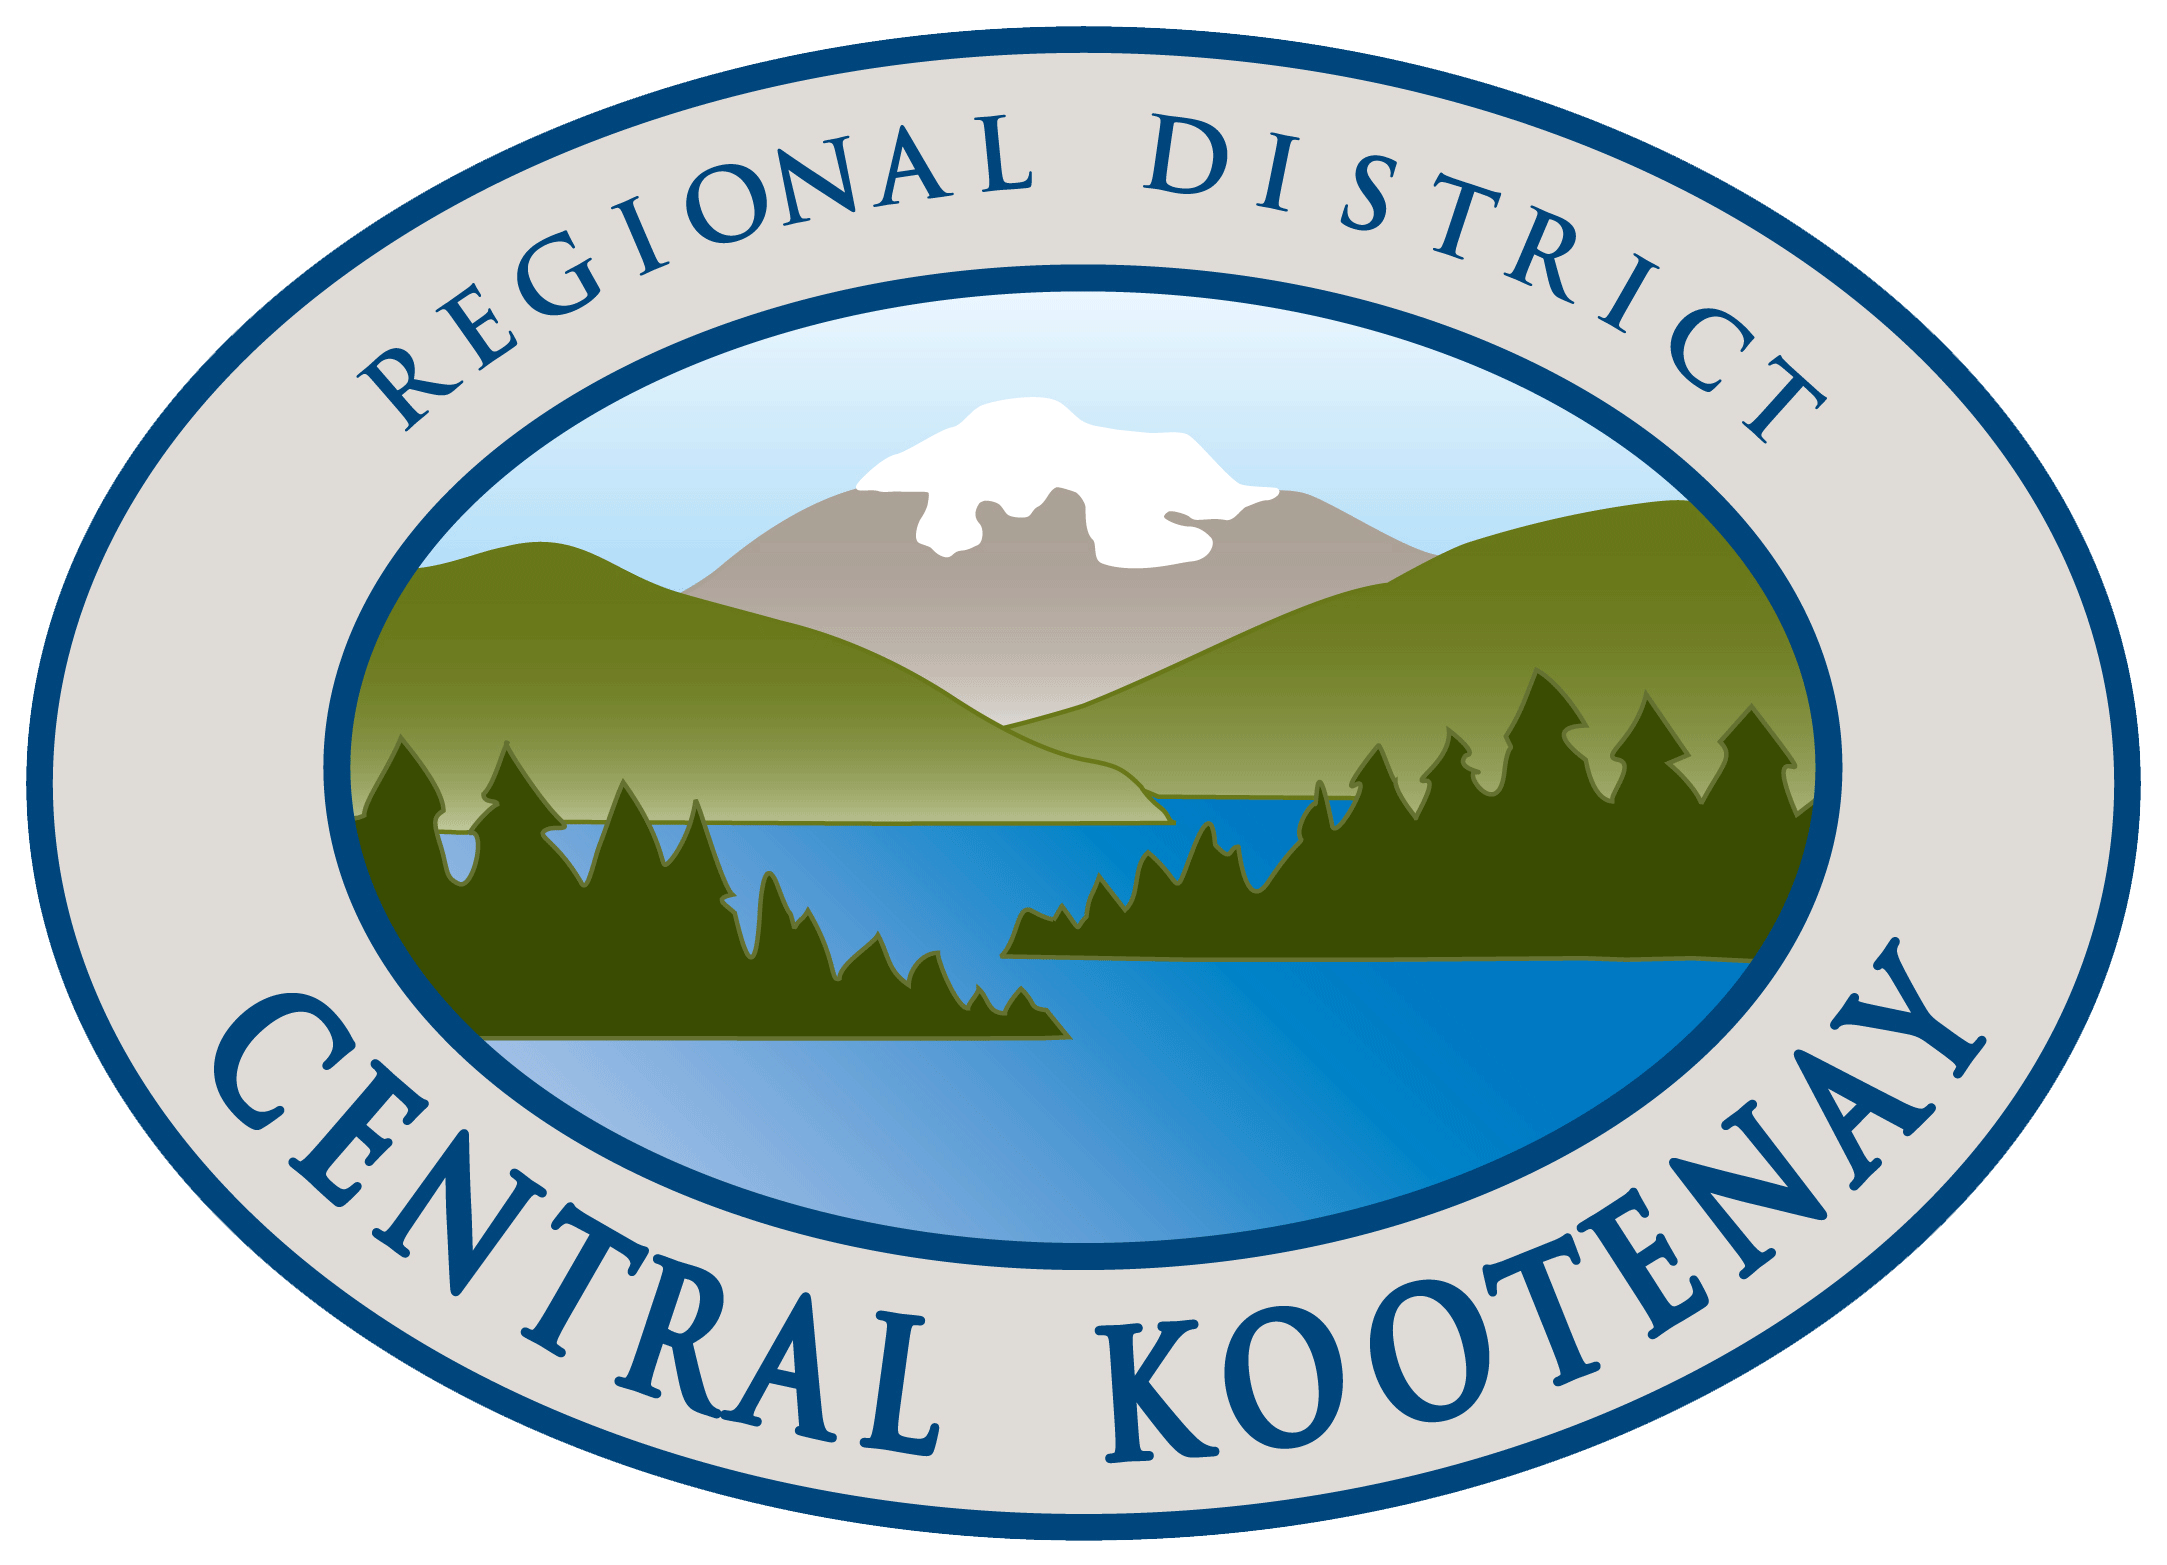 regional-district-of-central-kootenay